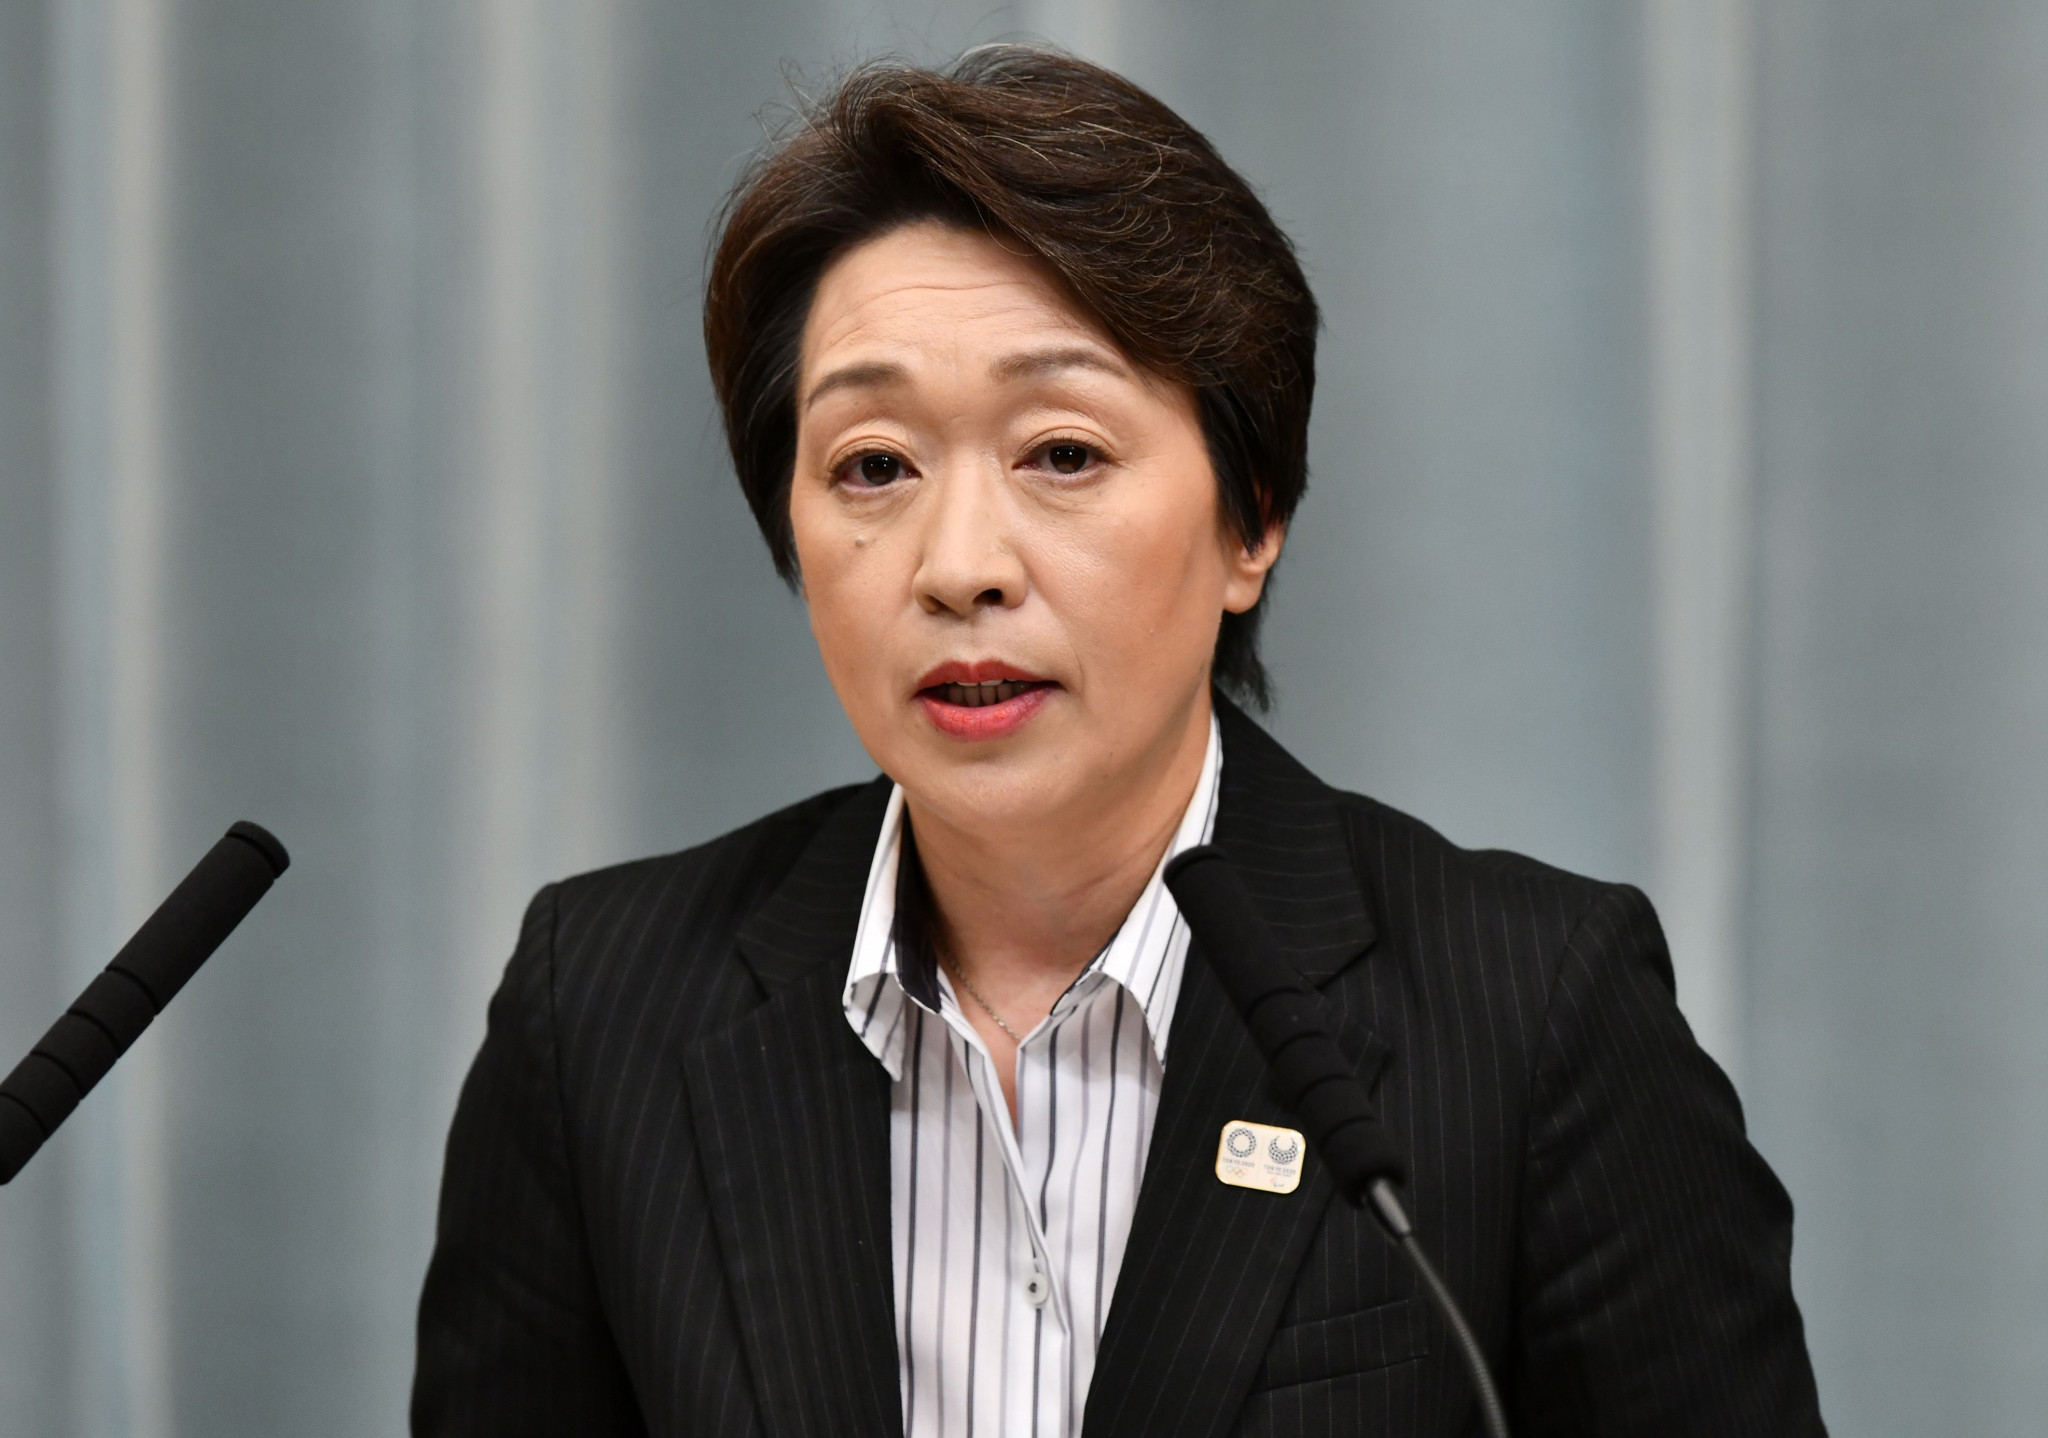 Japan's new Olympics Minister Seiko Hashimoto was in attendance at the opening ceremony ©Getty Images